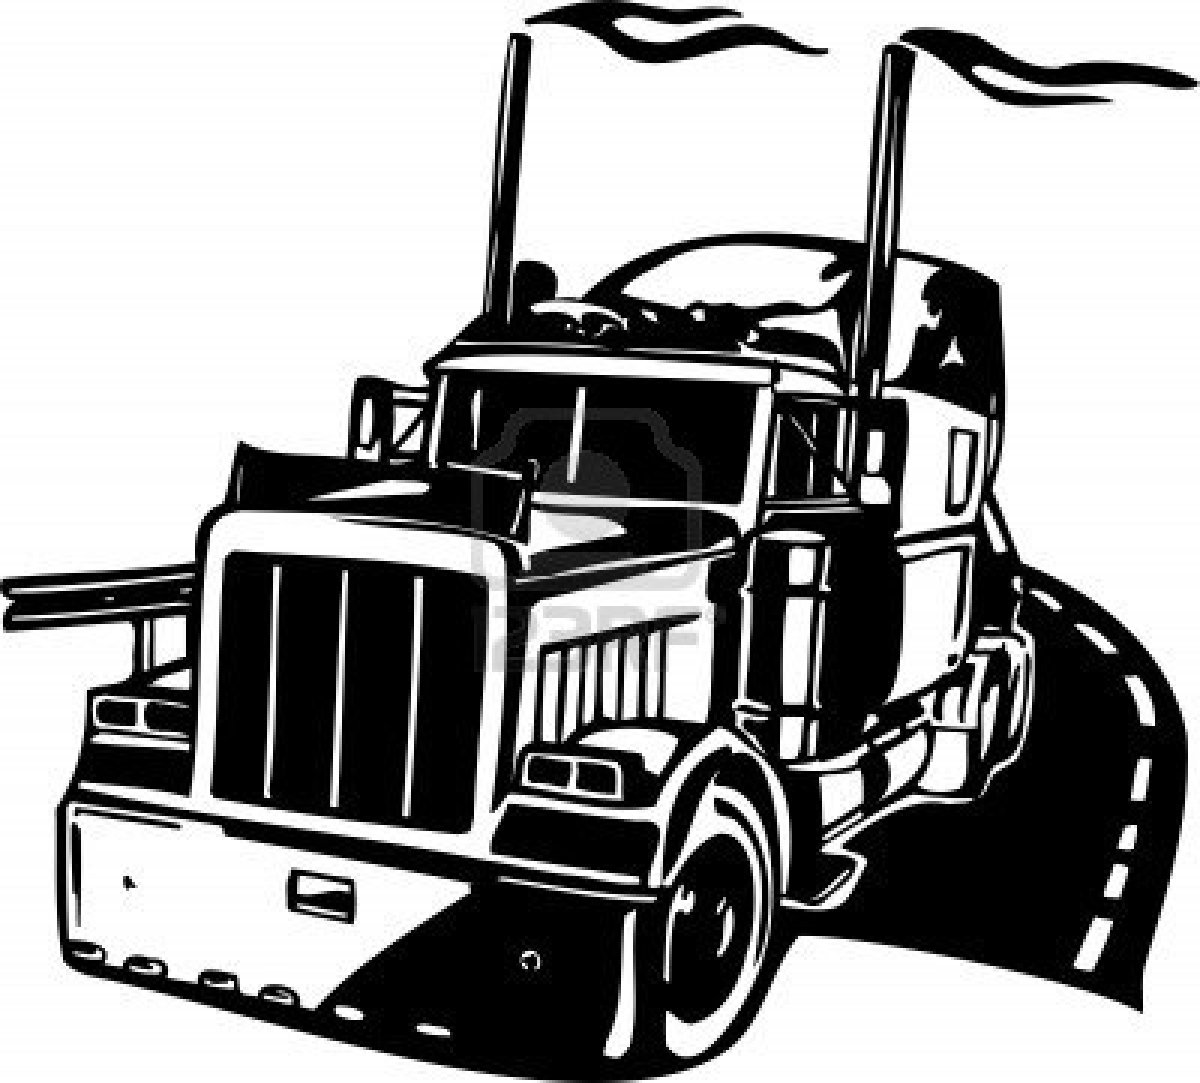 18 Wheeler Truck Vector: Semi Truck Clip Art Black and White, Semi ...